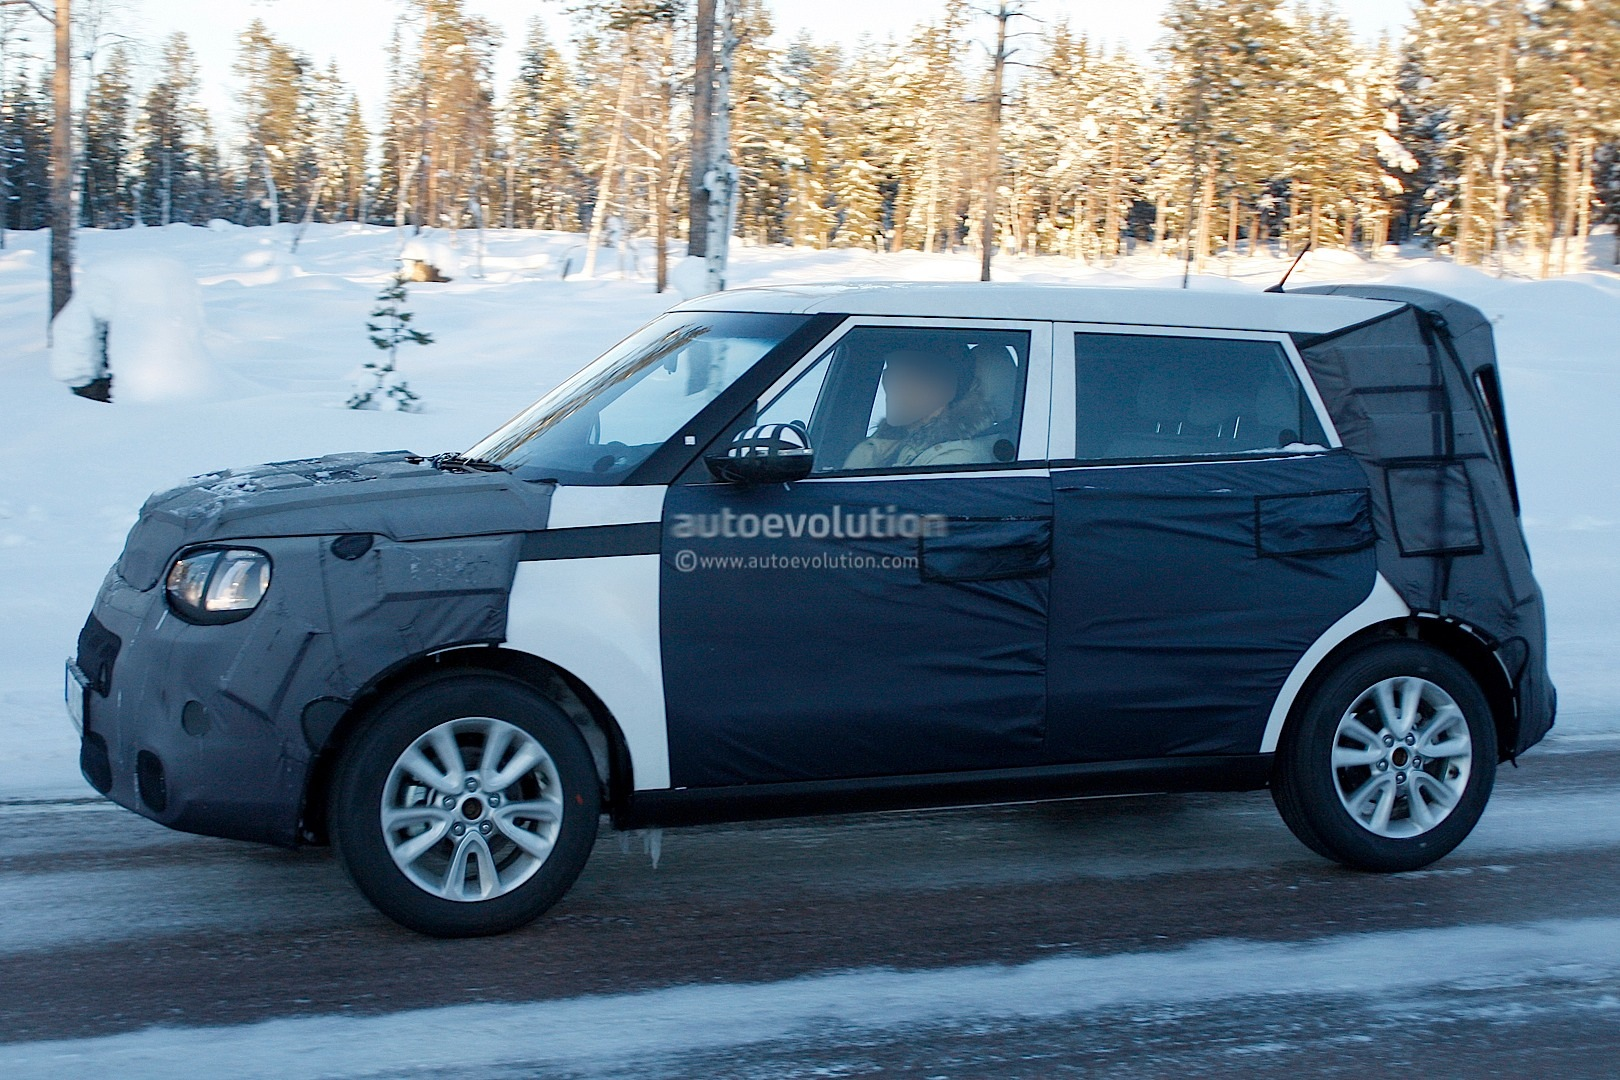 Spyshots Kia Soul Plays With New Tiger Nose In The Snow